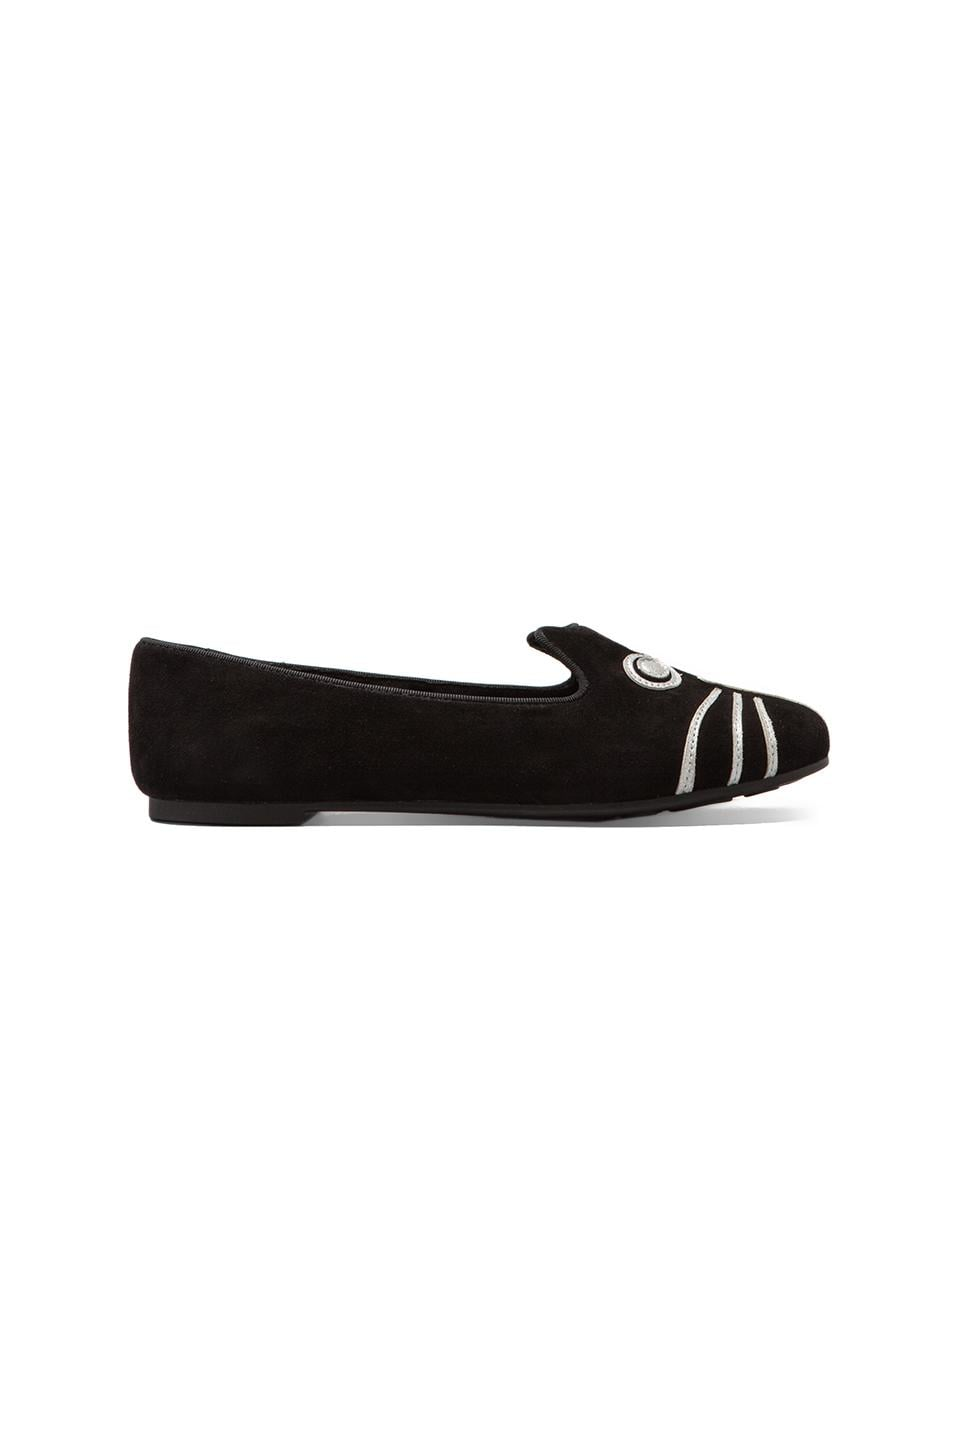 Marc by Marc Jacobs Rue Suede Metallic Loafer in Black/Silver